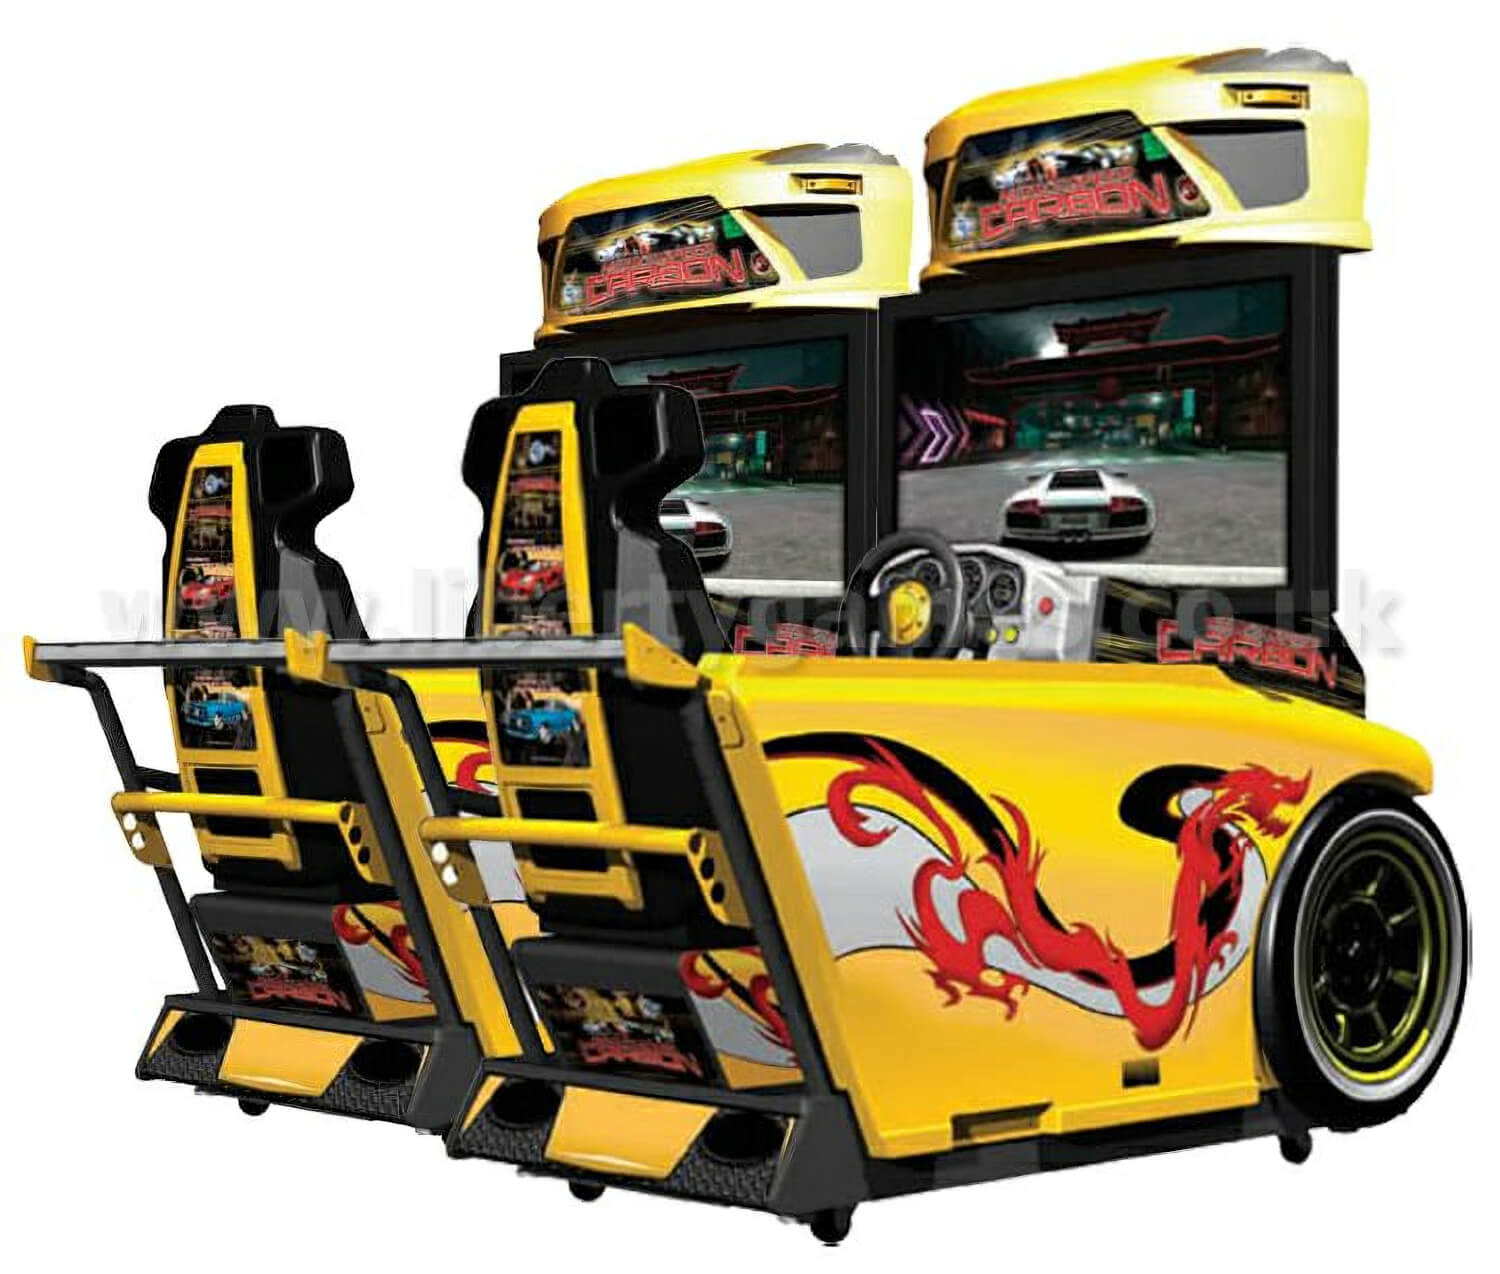 Need For Speed Carbon Twin Deluxe Arcade Machine Liberty